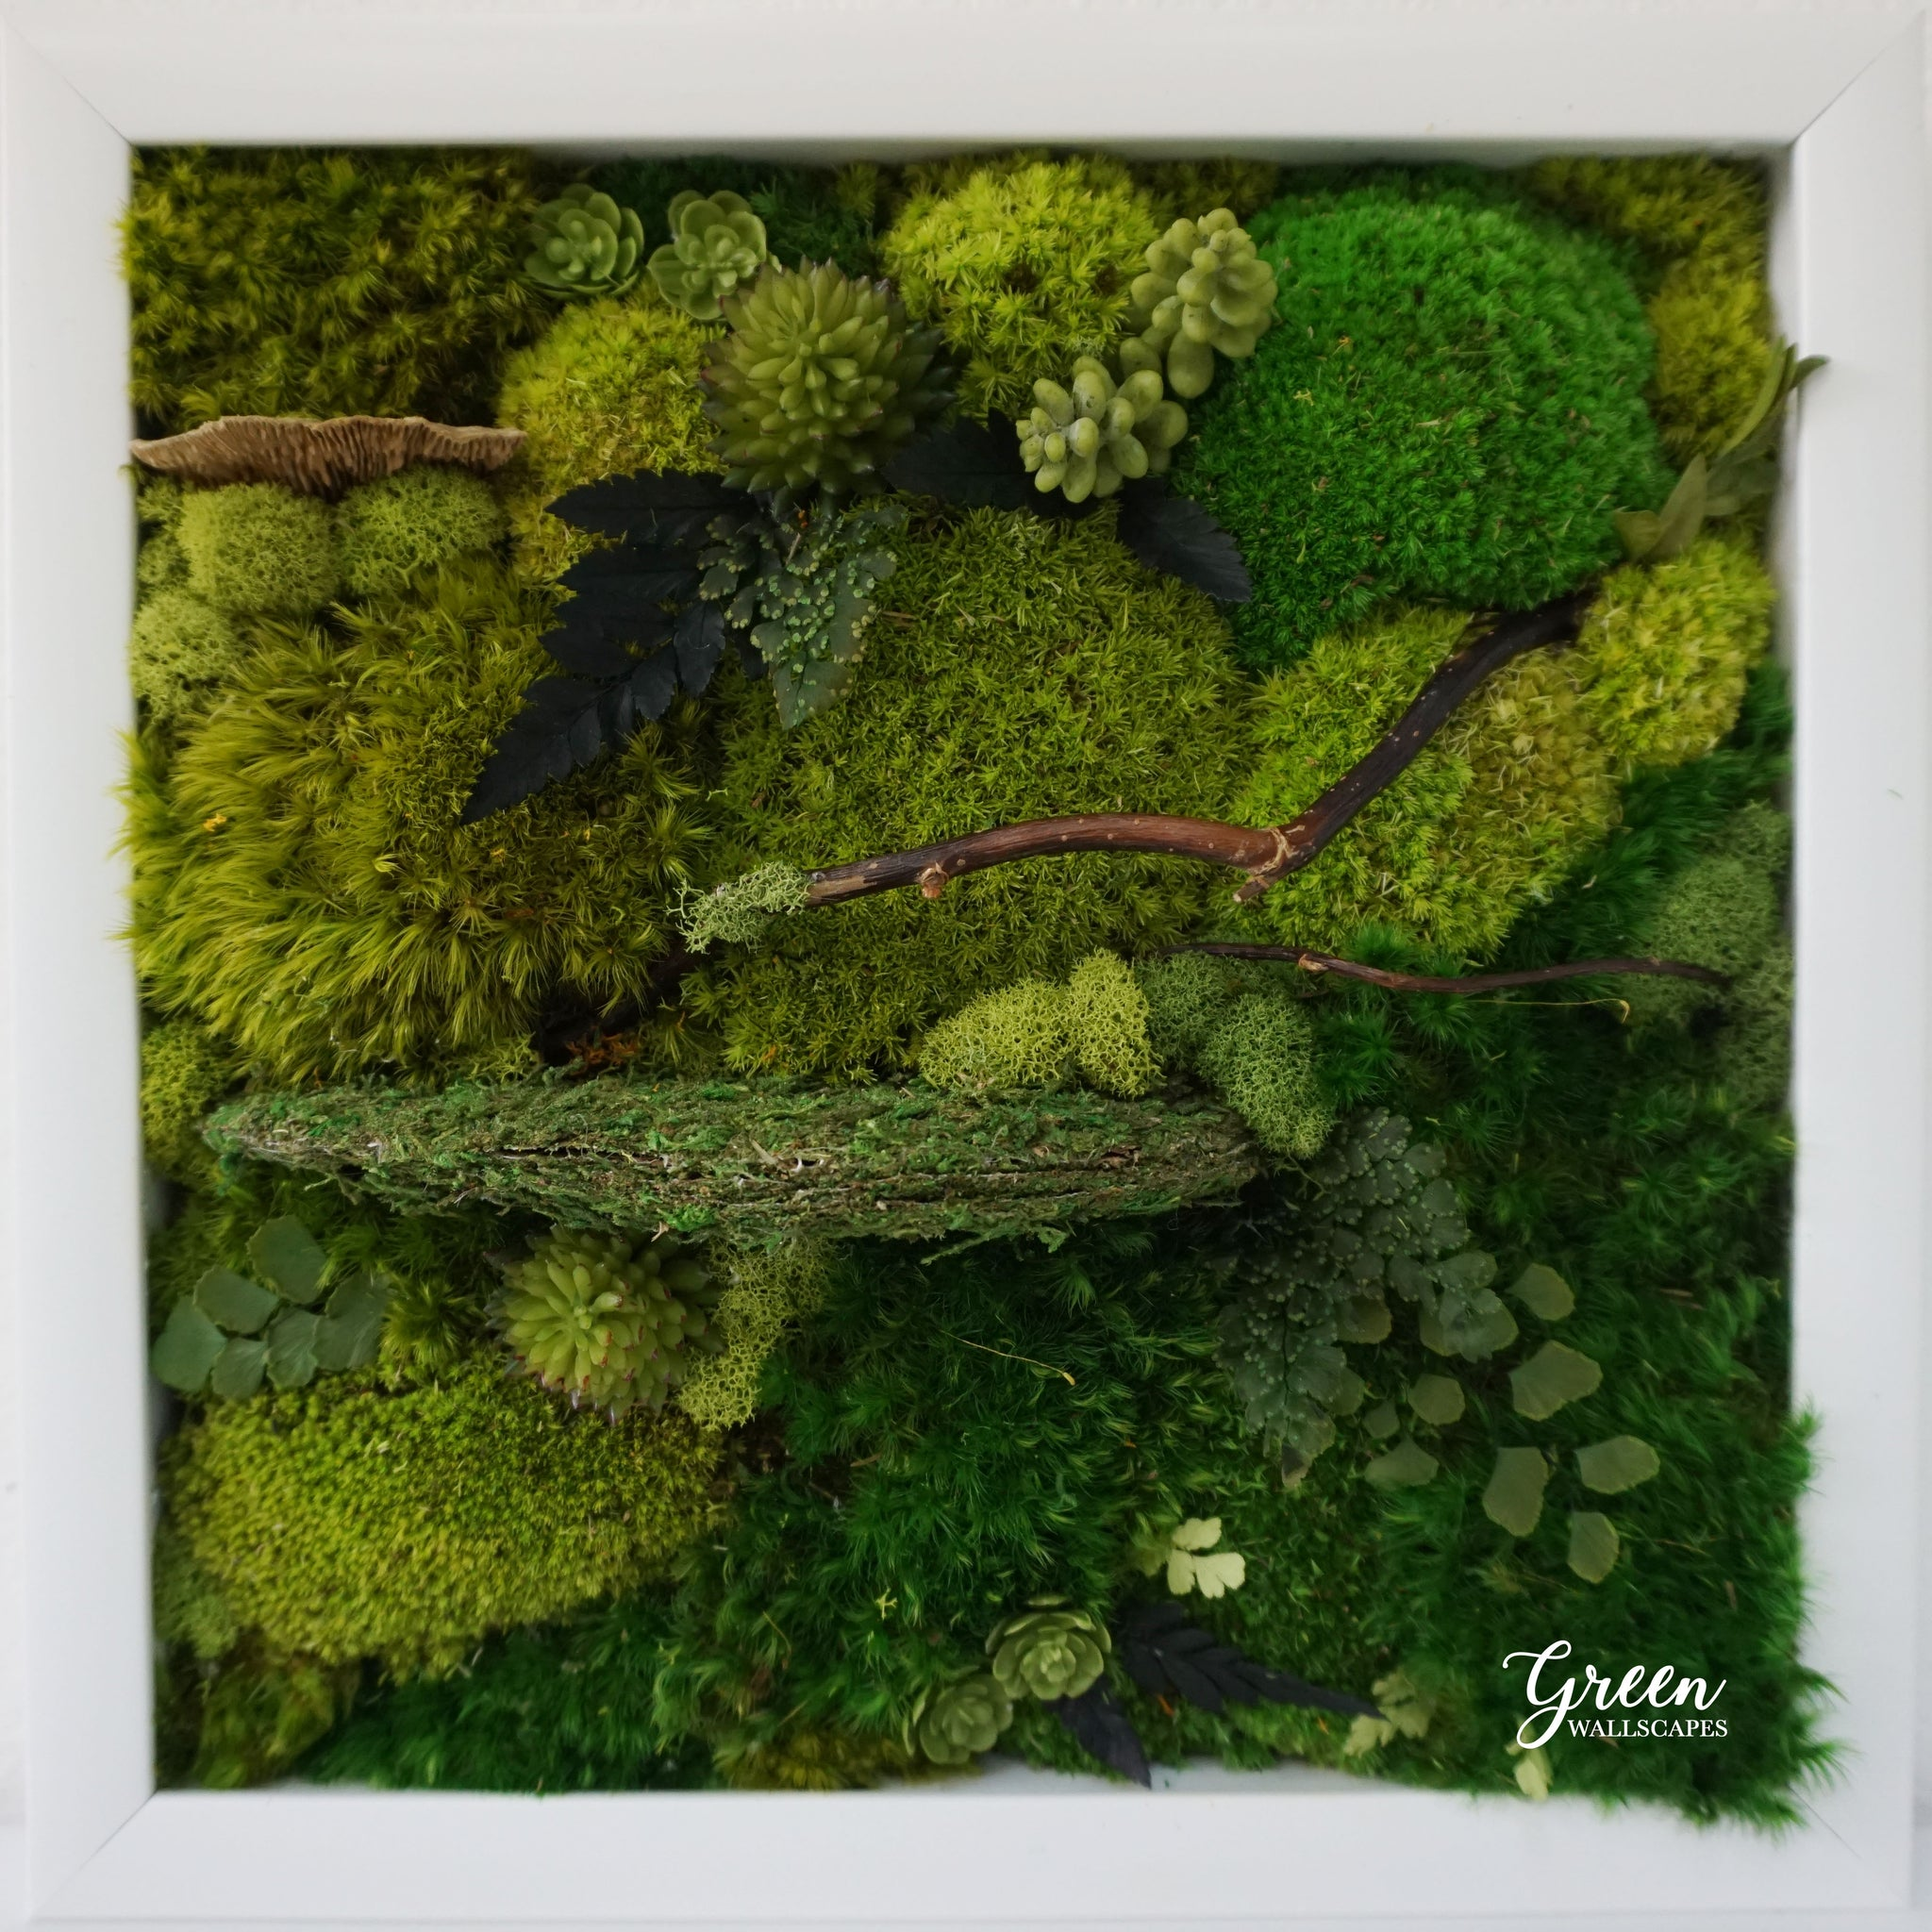 Framed Moss Art Wall Art Framed Art Natural Wall Art Botanical Green Wallscapes